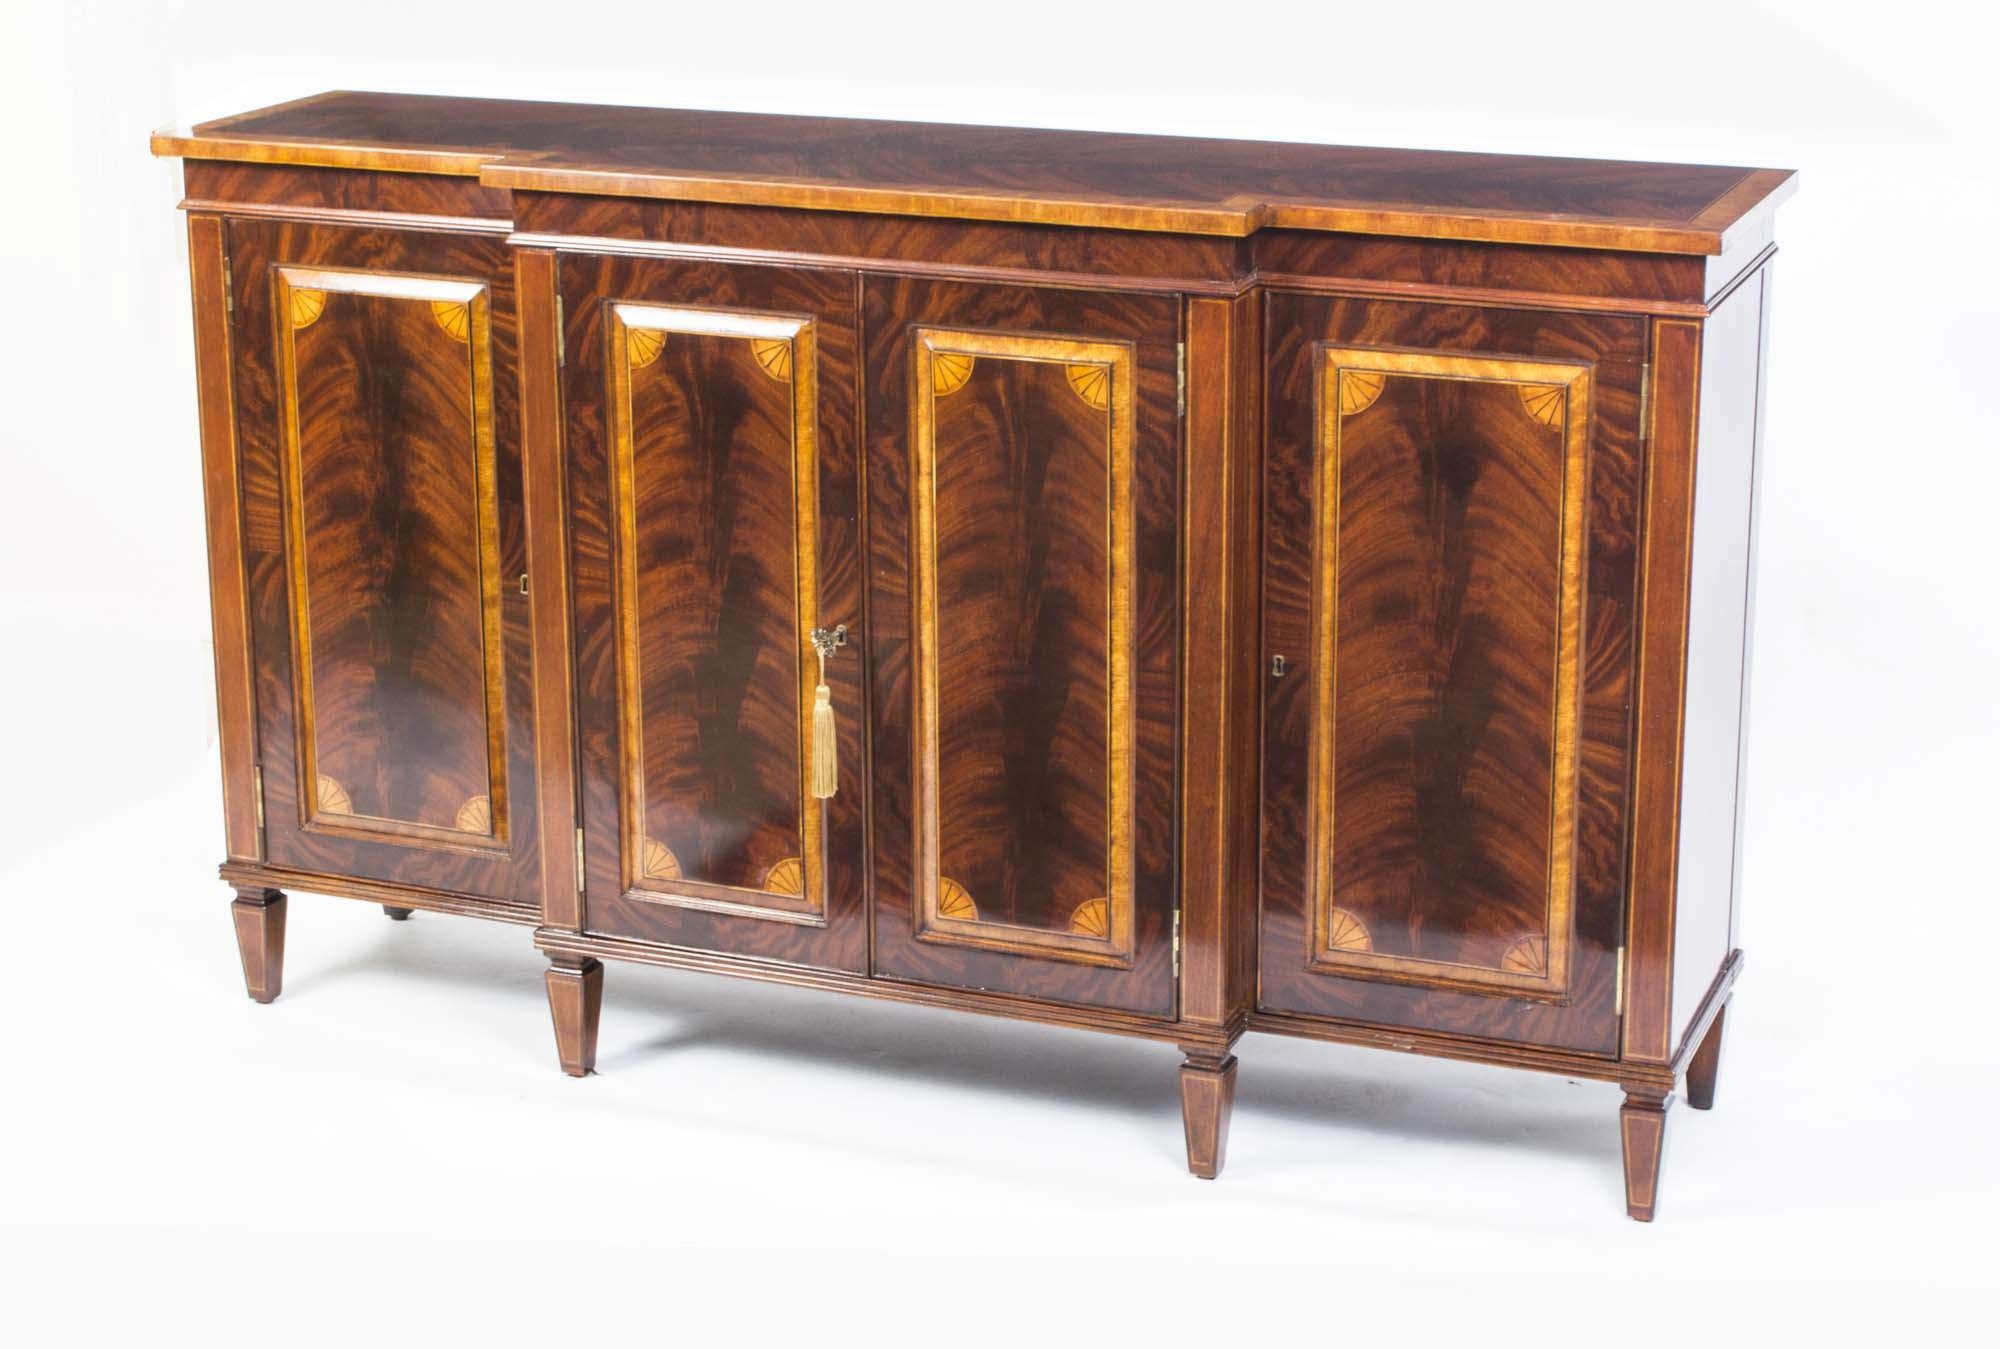 New Credenzas And Sideboards – Bjdgjy Regarding Credenzas And Sideboards (View 4 of 20)